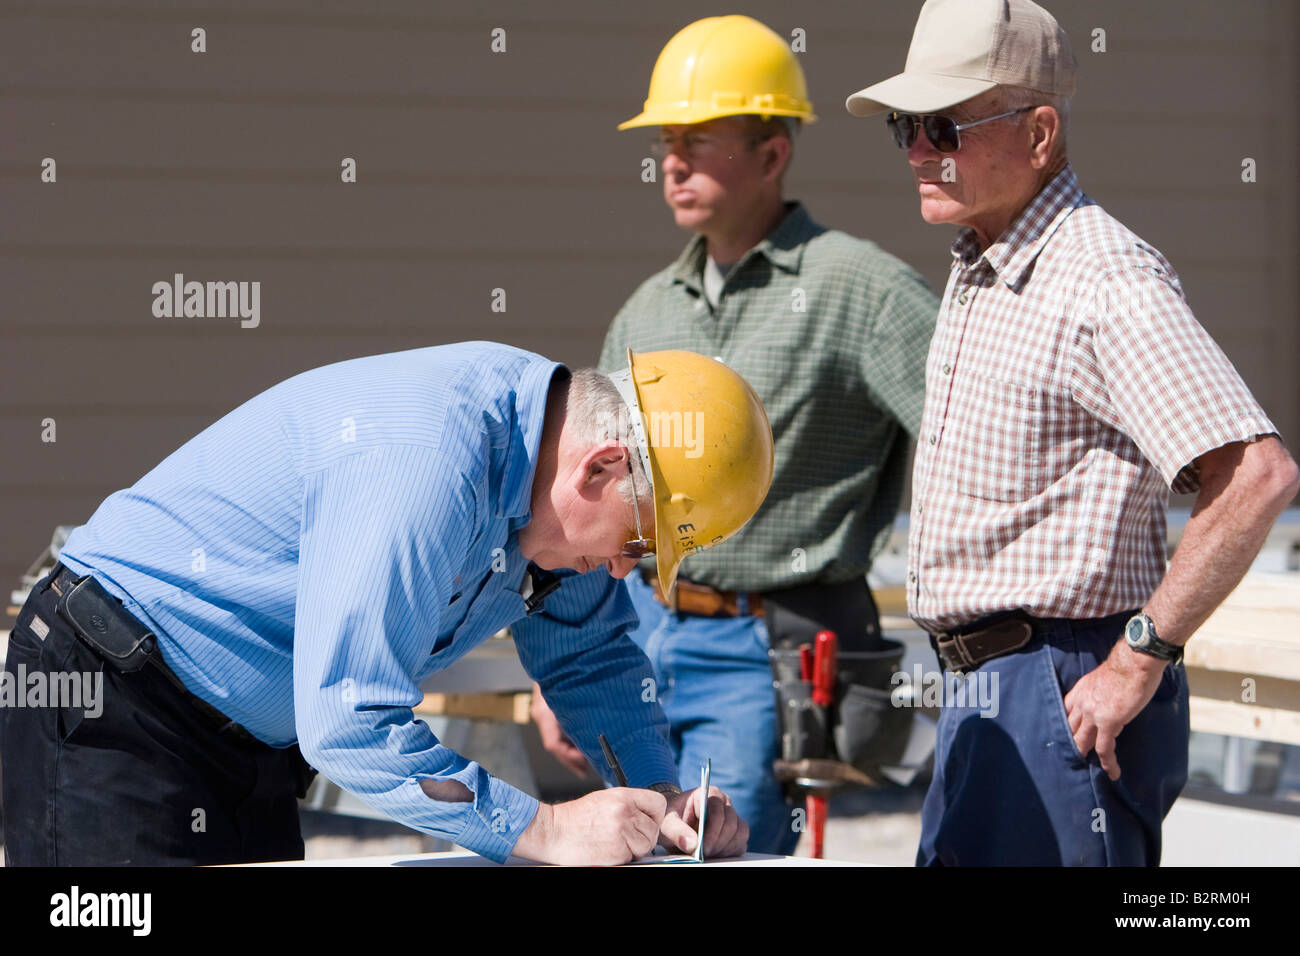 A construction foreman signs paperwork on a job site - Stock Image